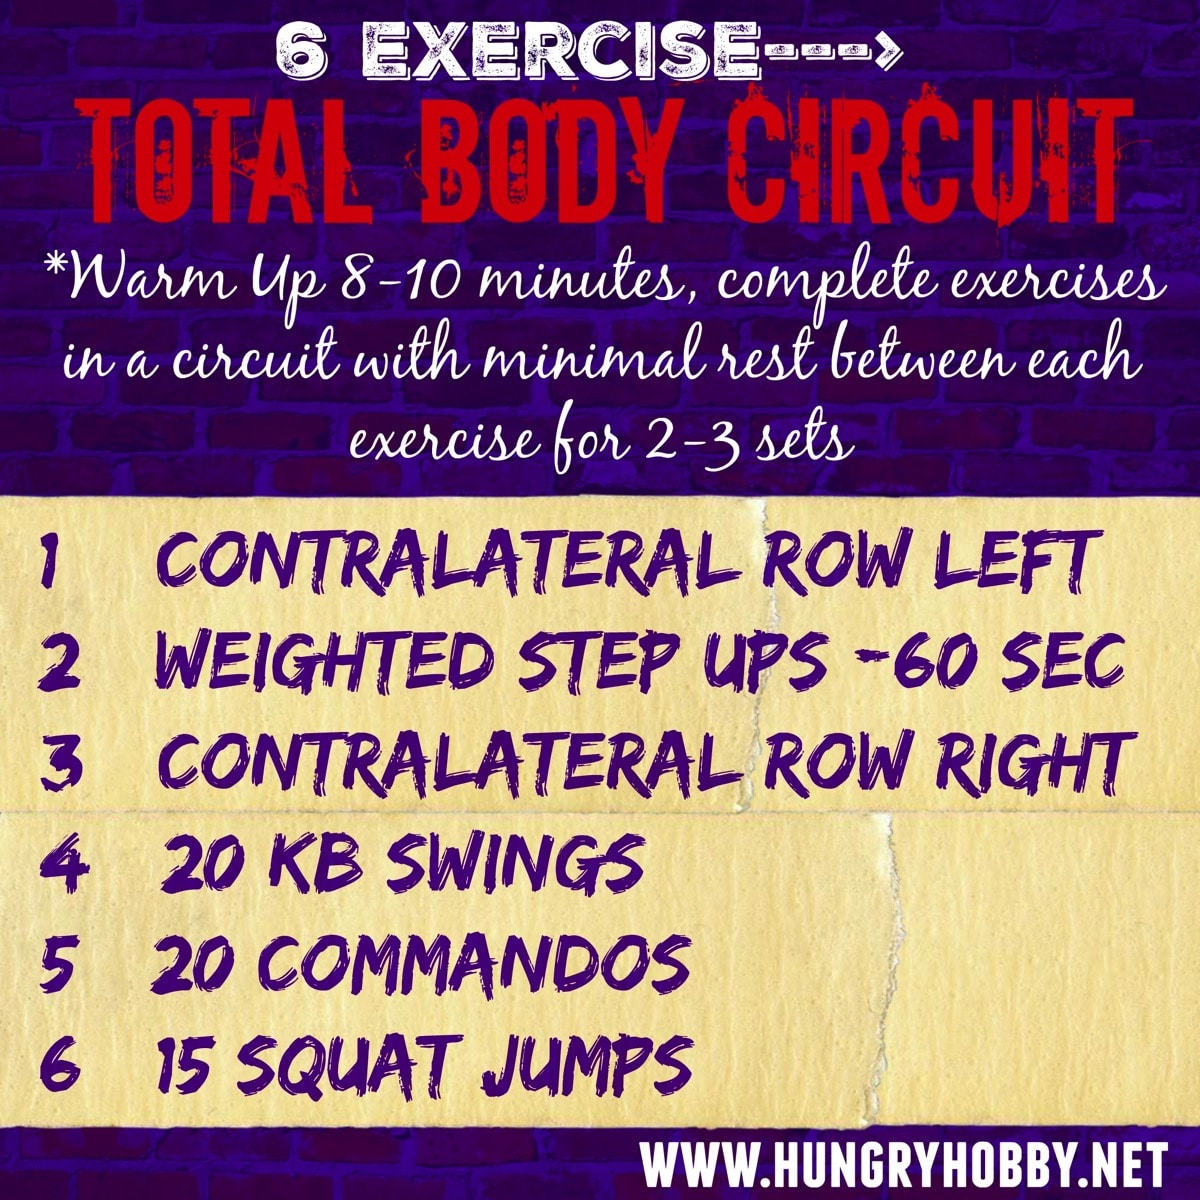 6 Exercise Total Body Circuit